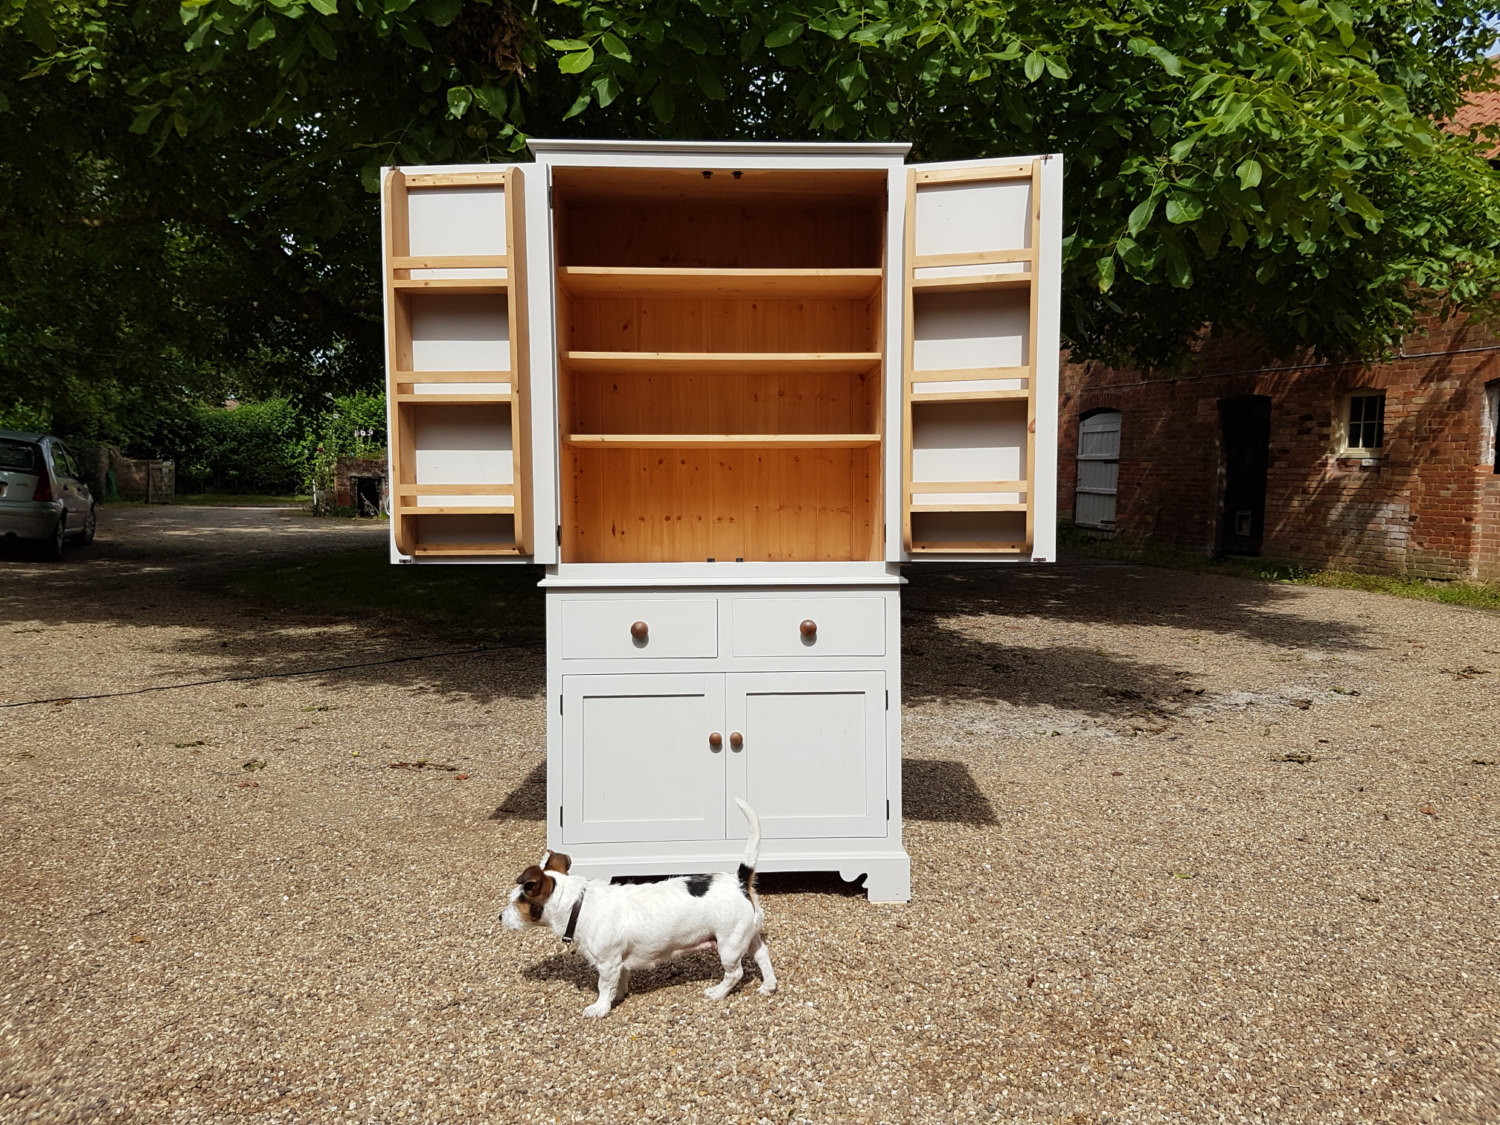 Bespoke Larder Cupboard - made to order, any size & colour